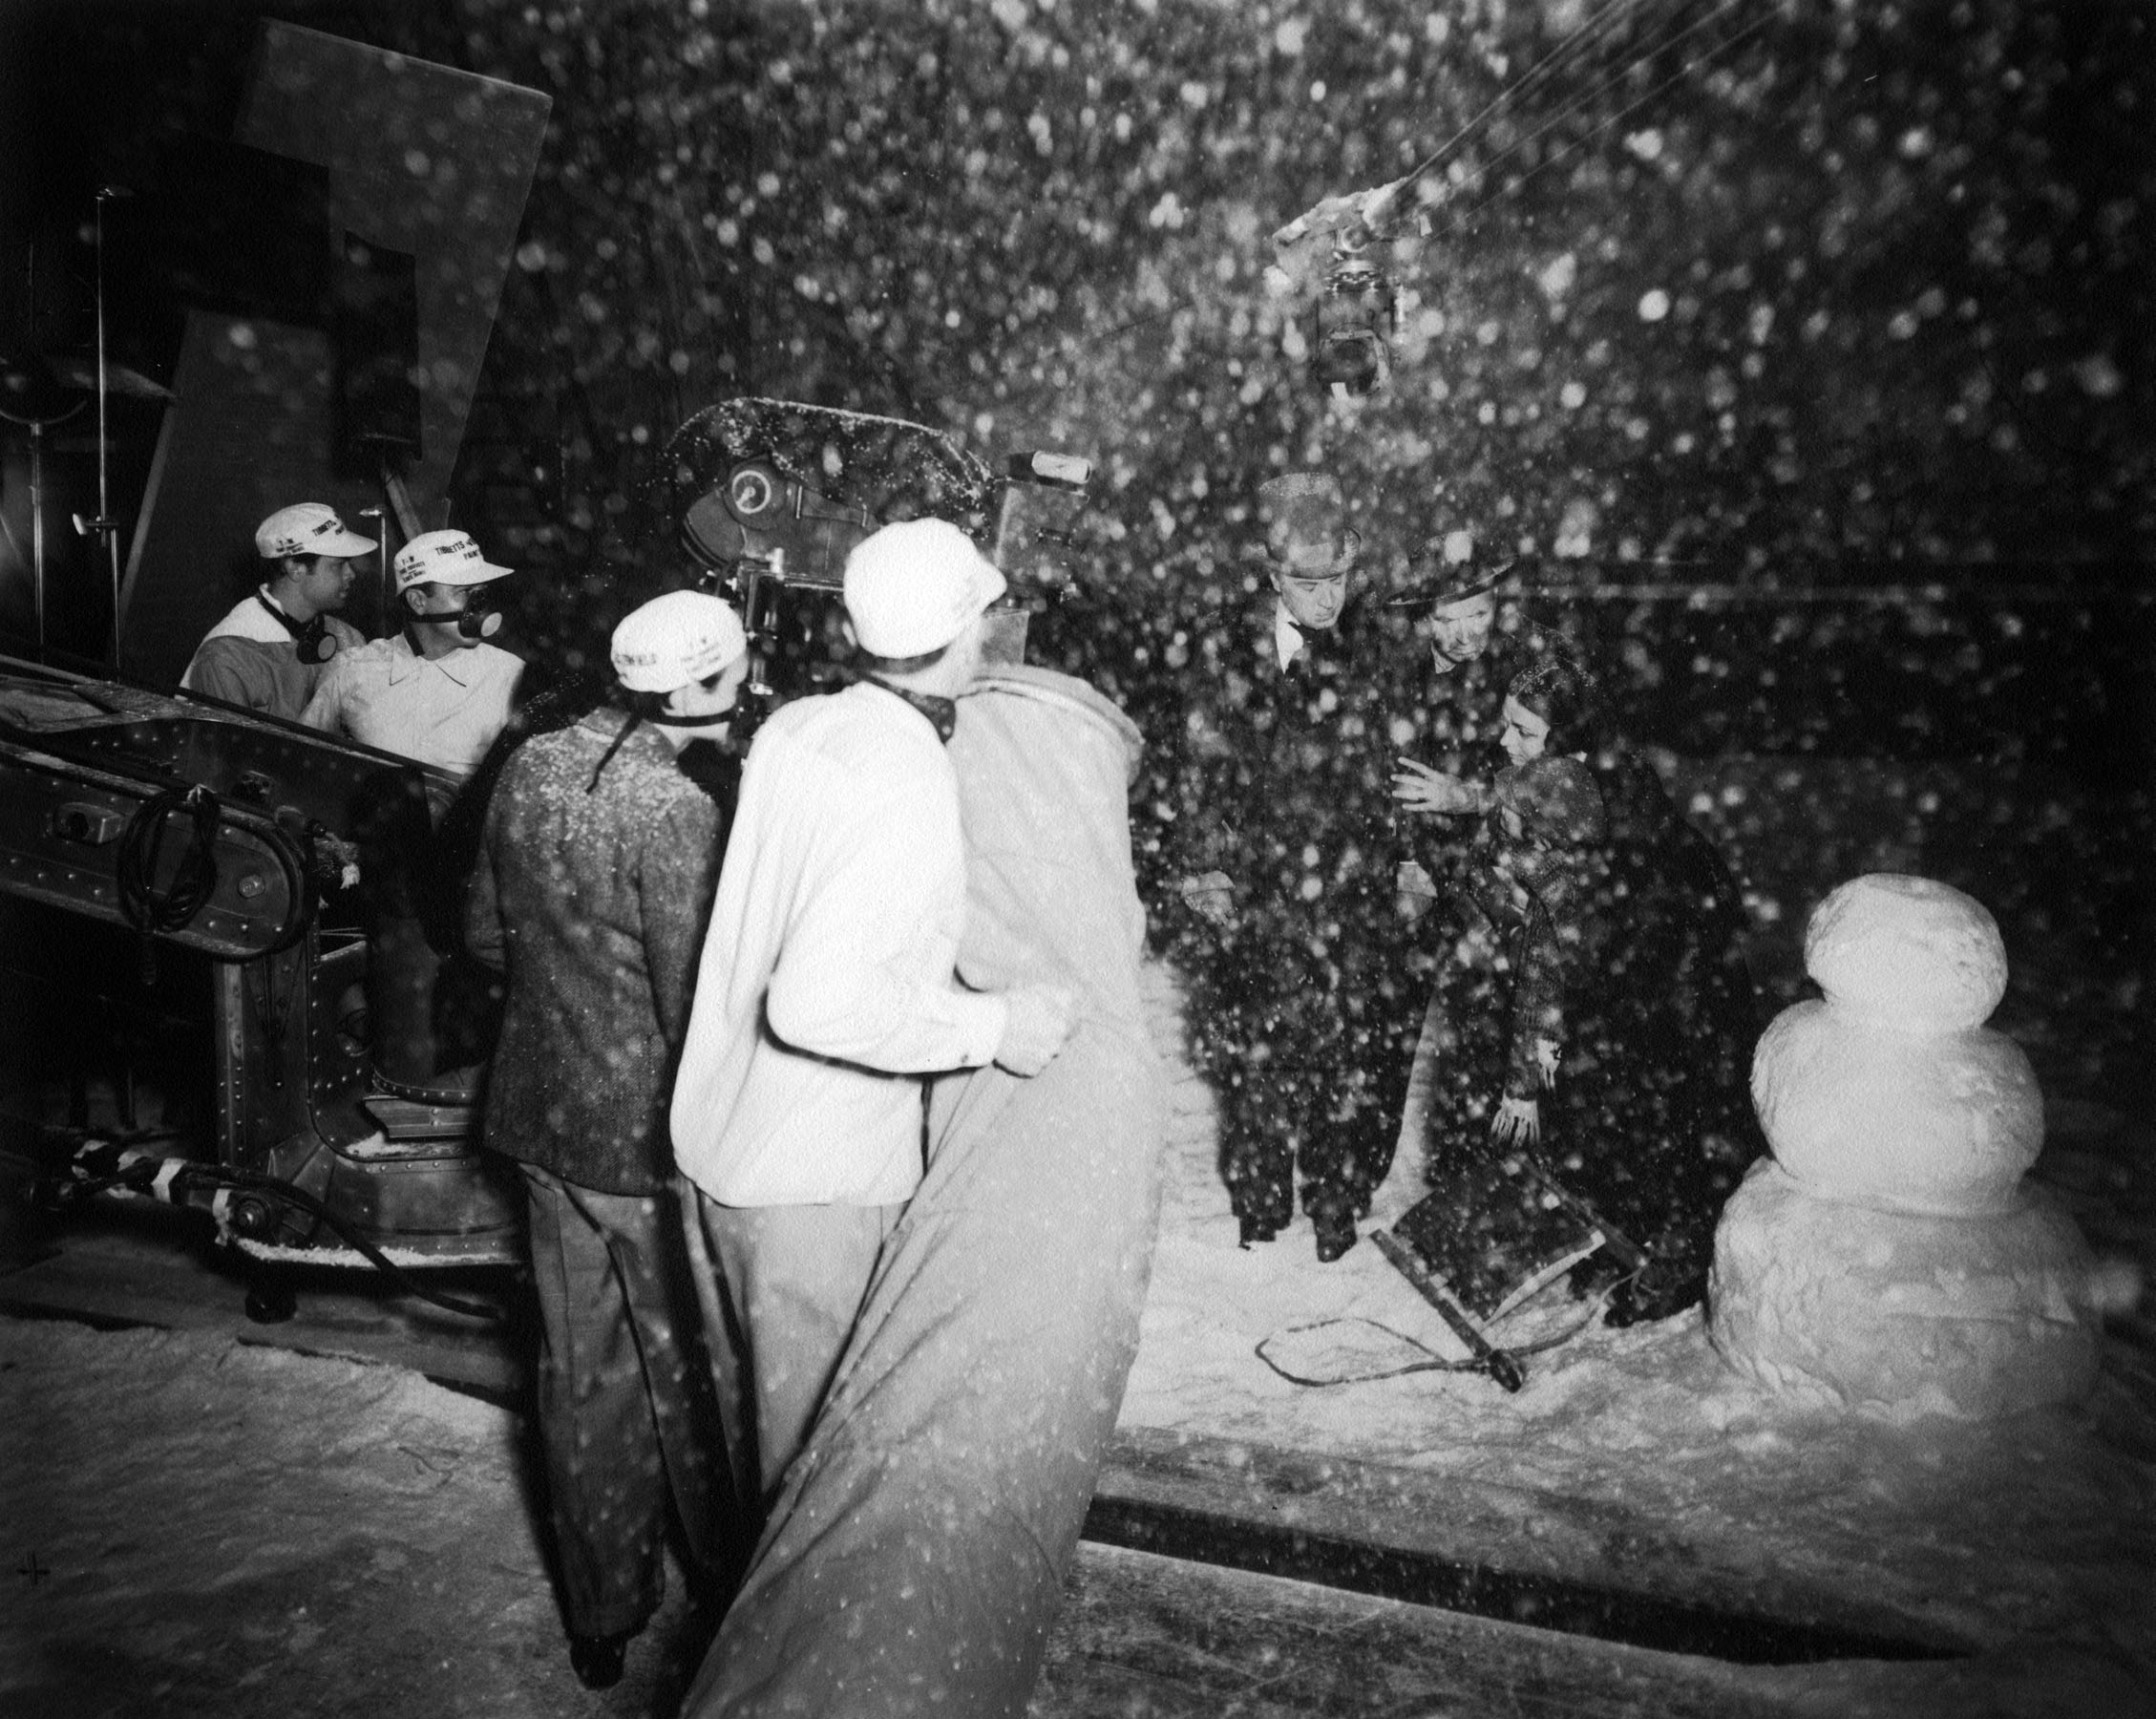 The crew wearing ventilator masks during the shooting of a snow scene.